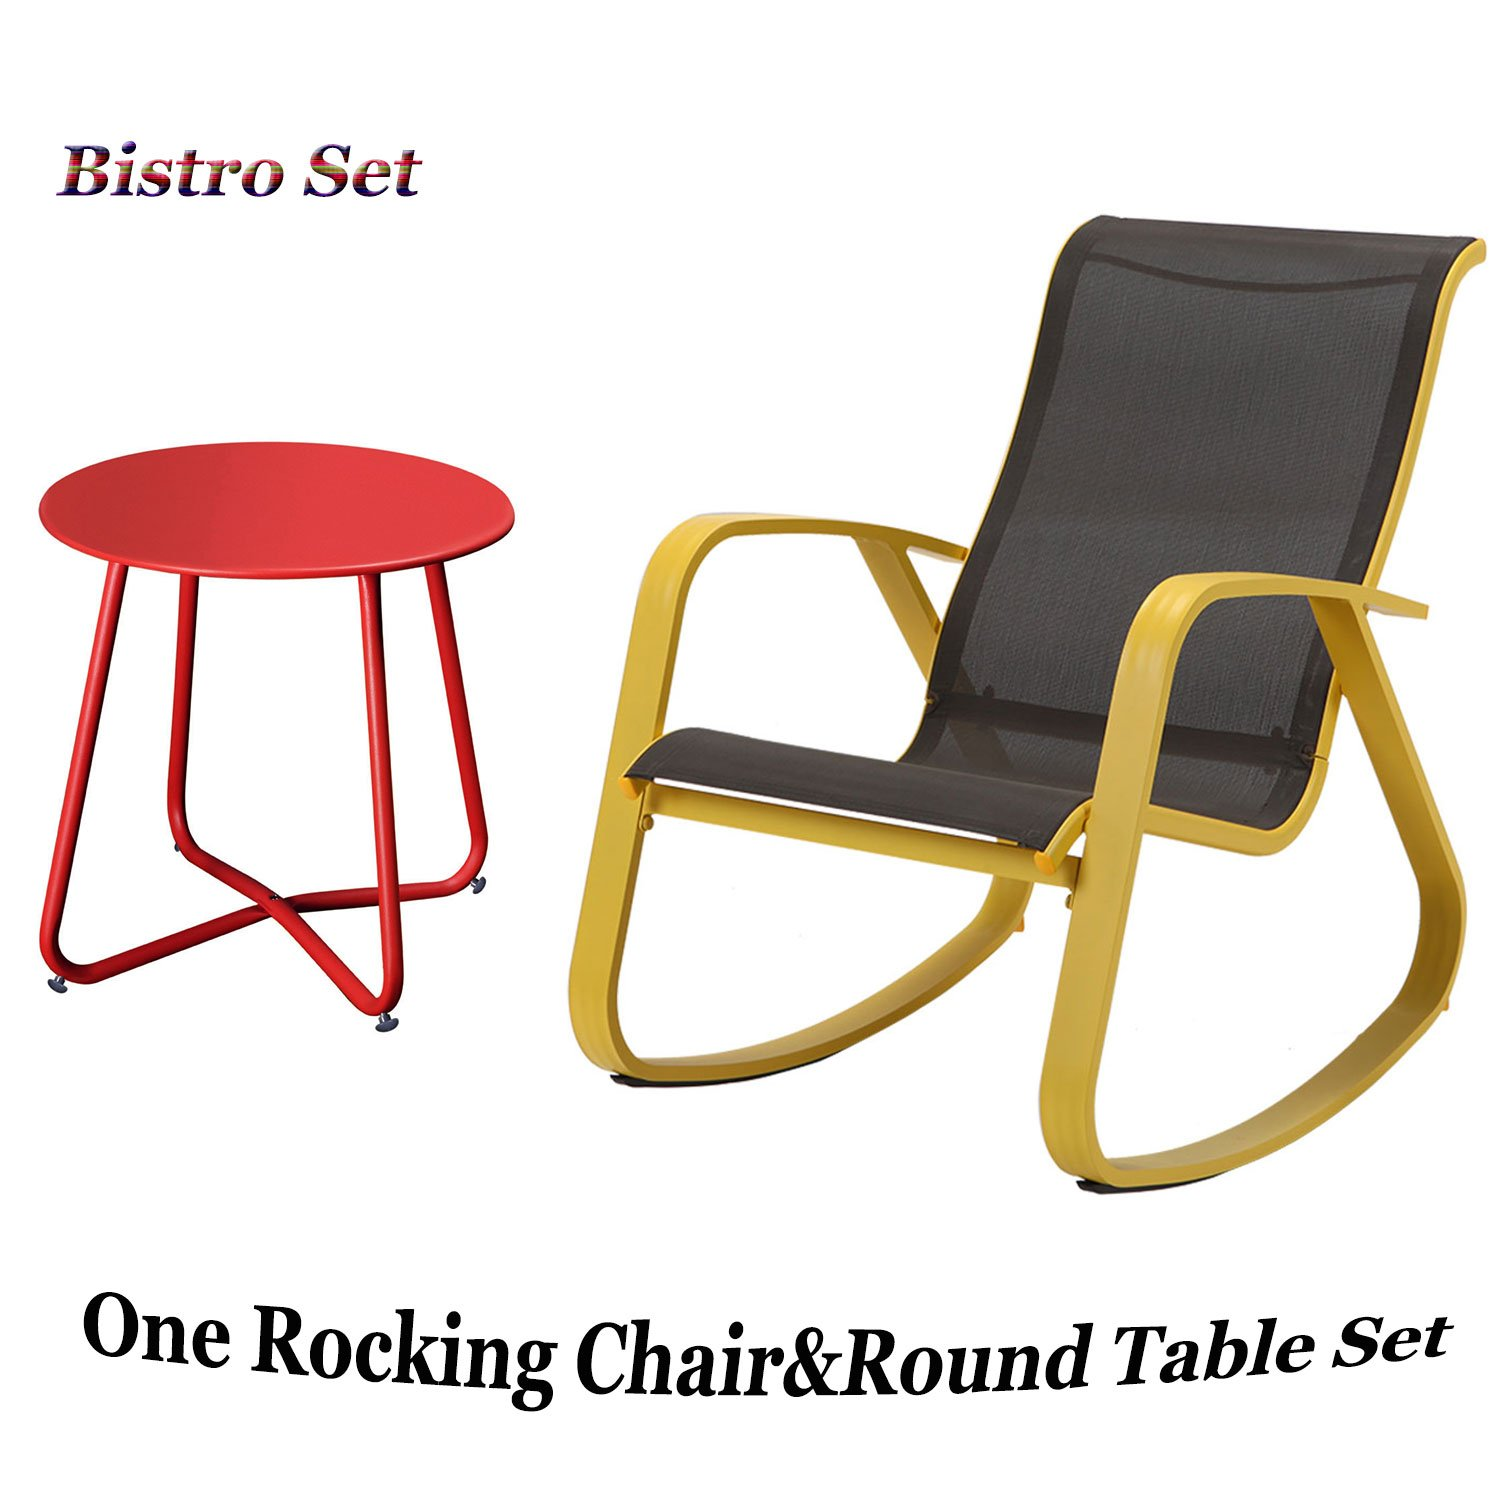 Grand patio Wide Gliders Rocking Chair and Round Table, 2 Pcs,Steel Frame,for Outdoor Porch Lawn,Color Yellow&Red by Grand patio